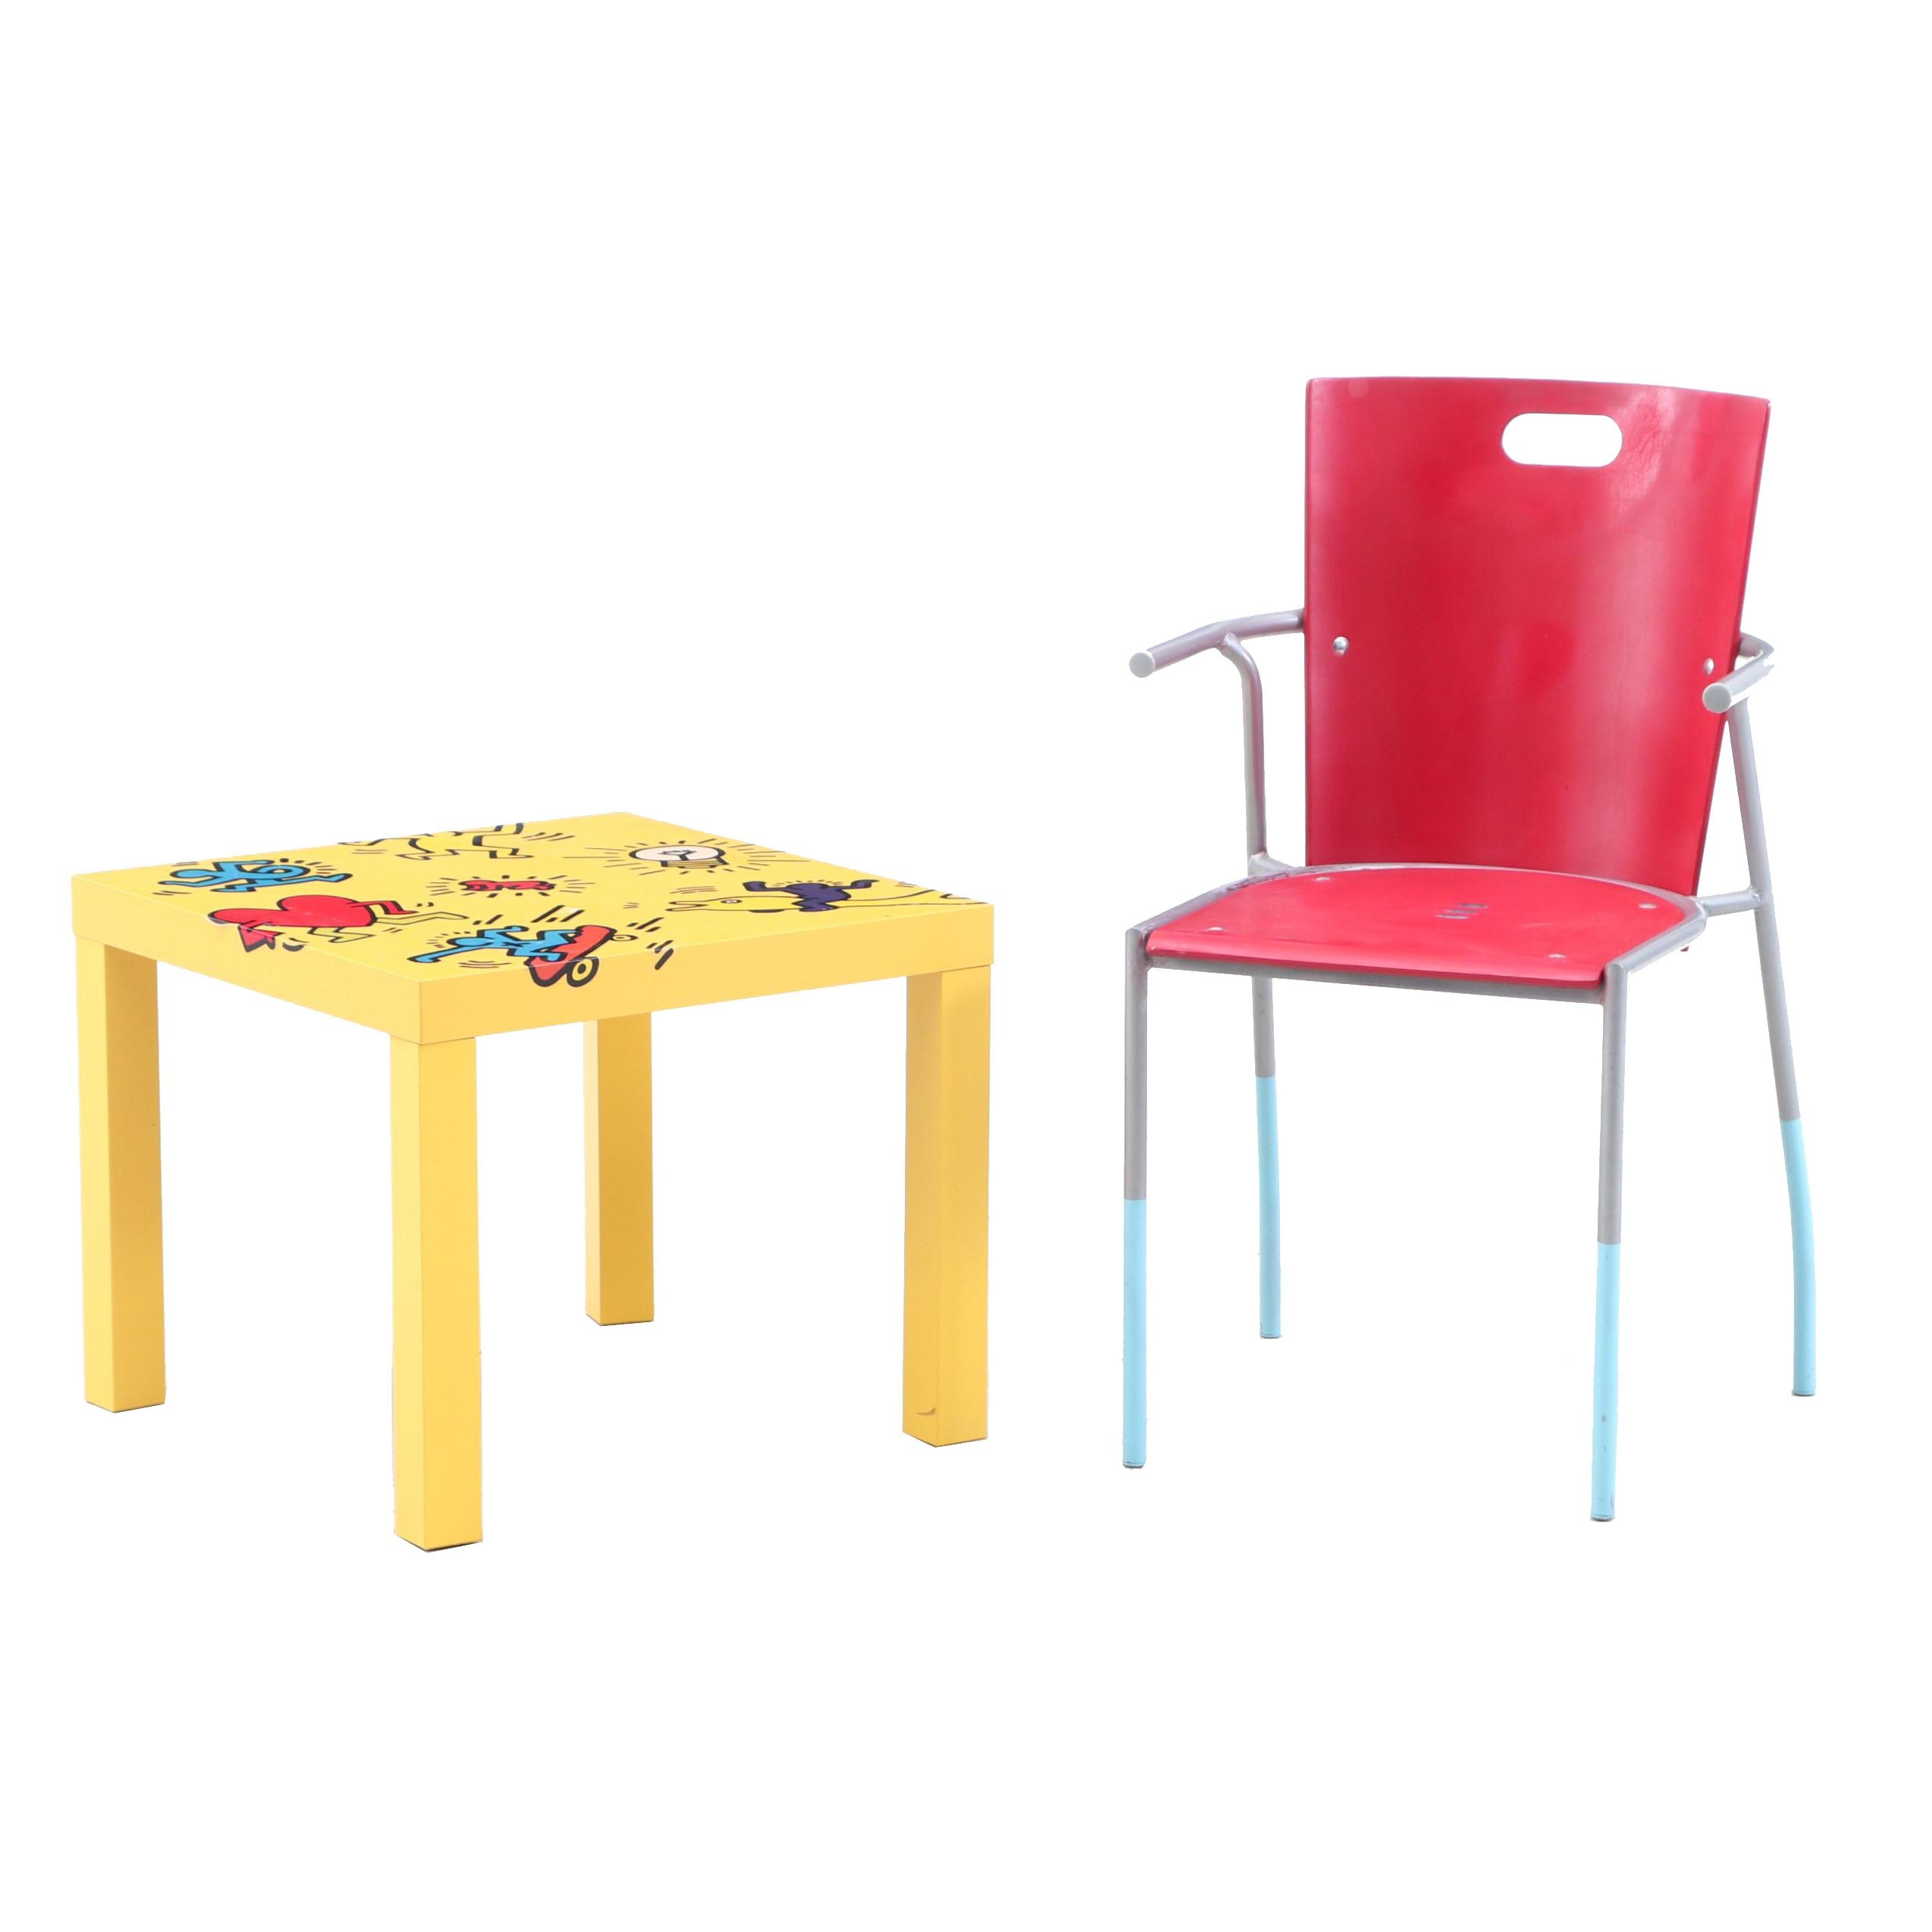 Modern Chair and Keith Haring Inspired IKEA Side Table